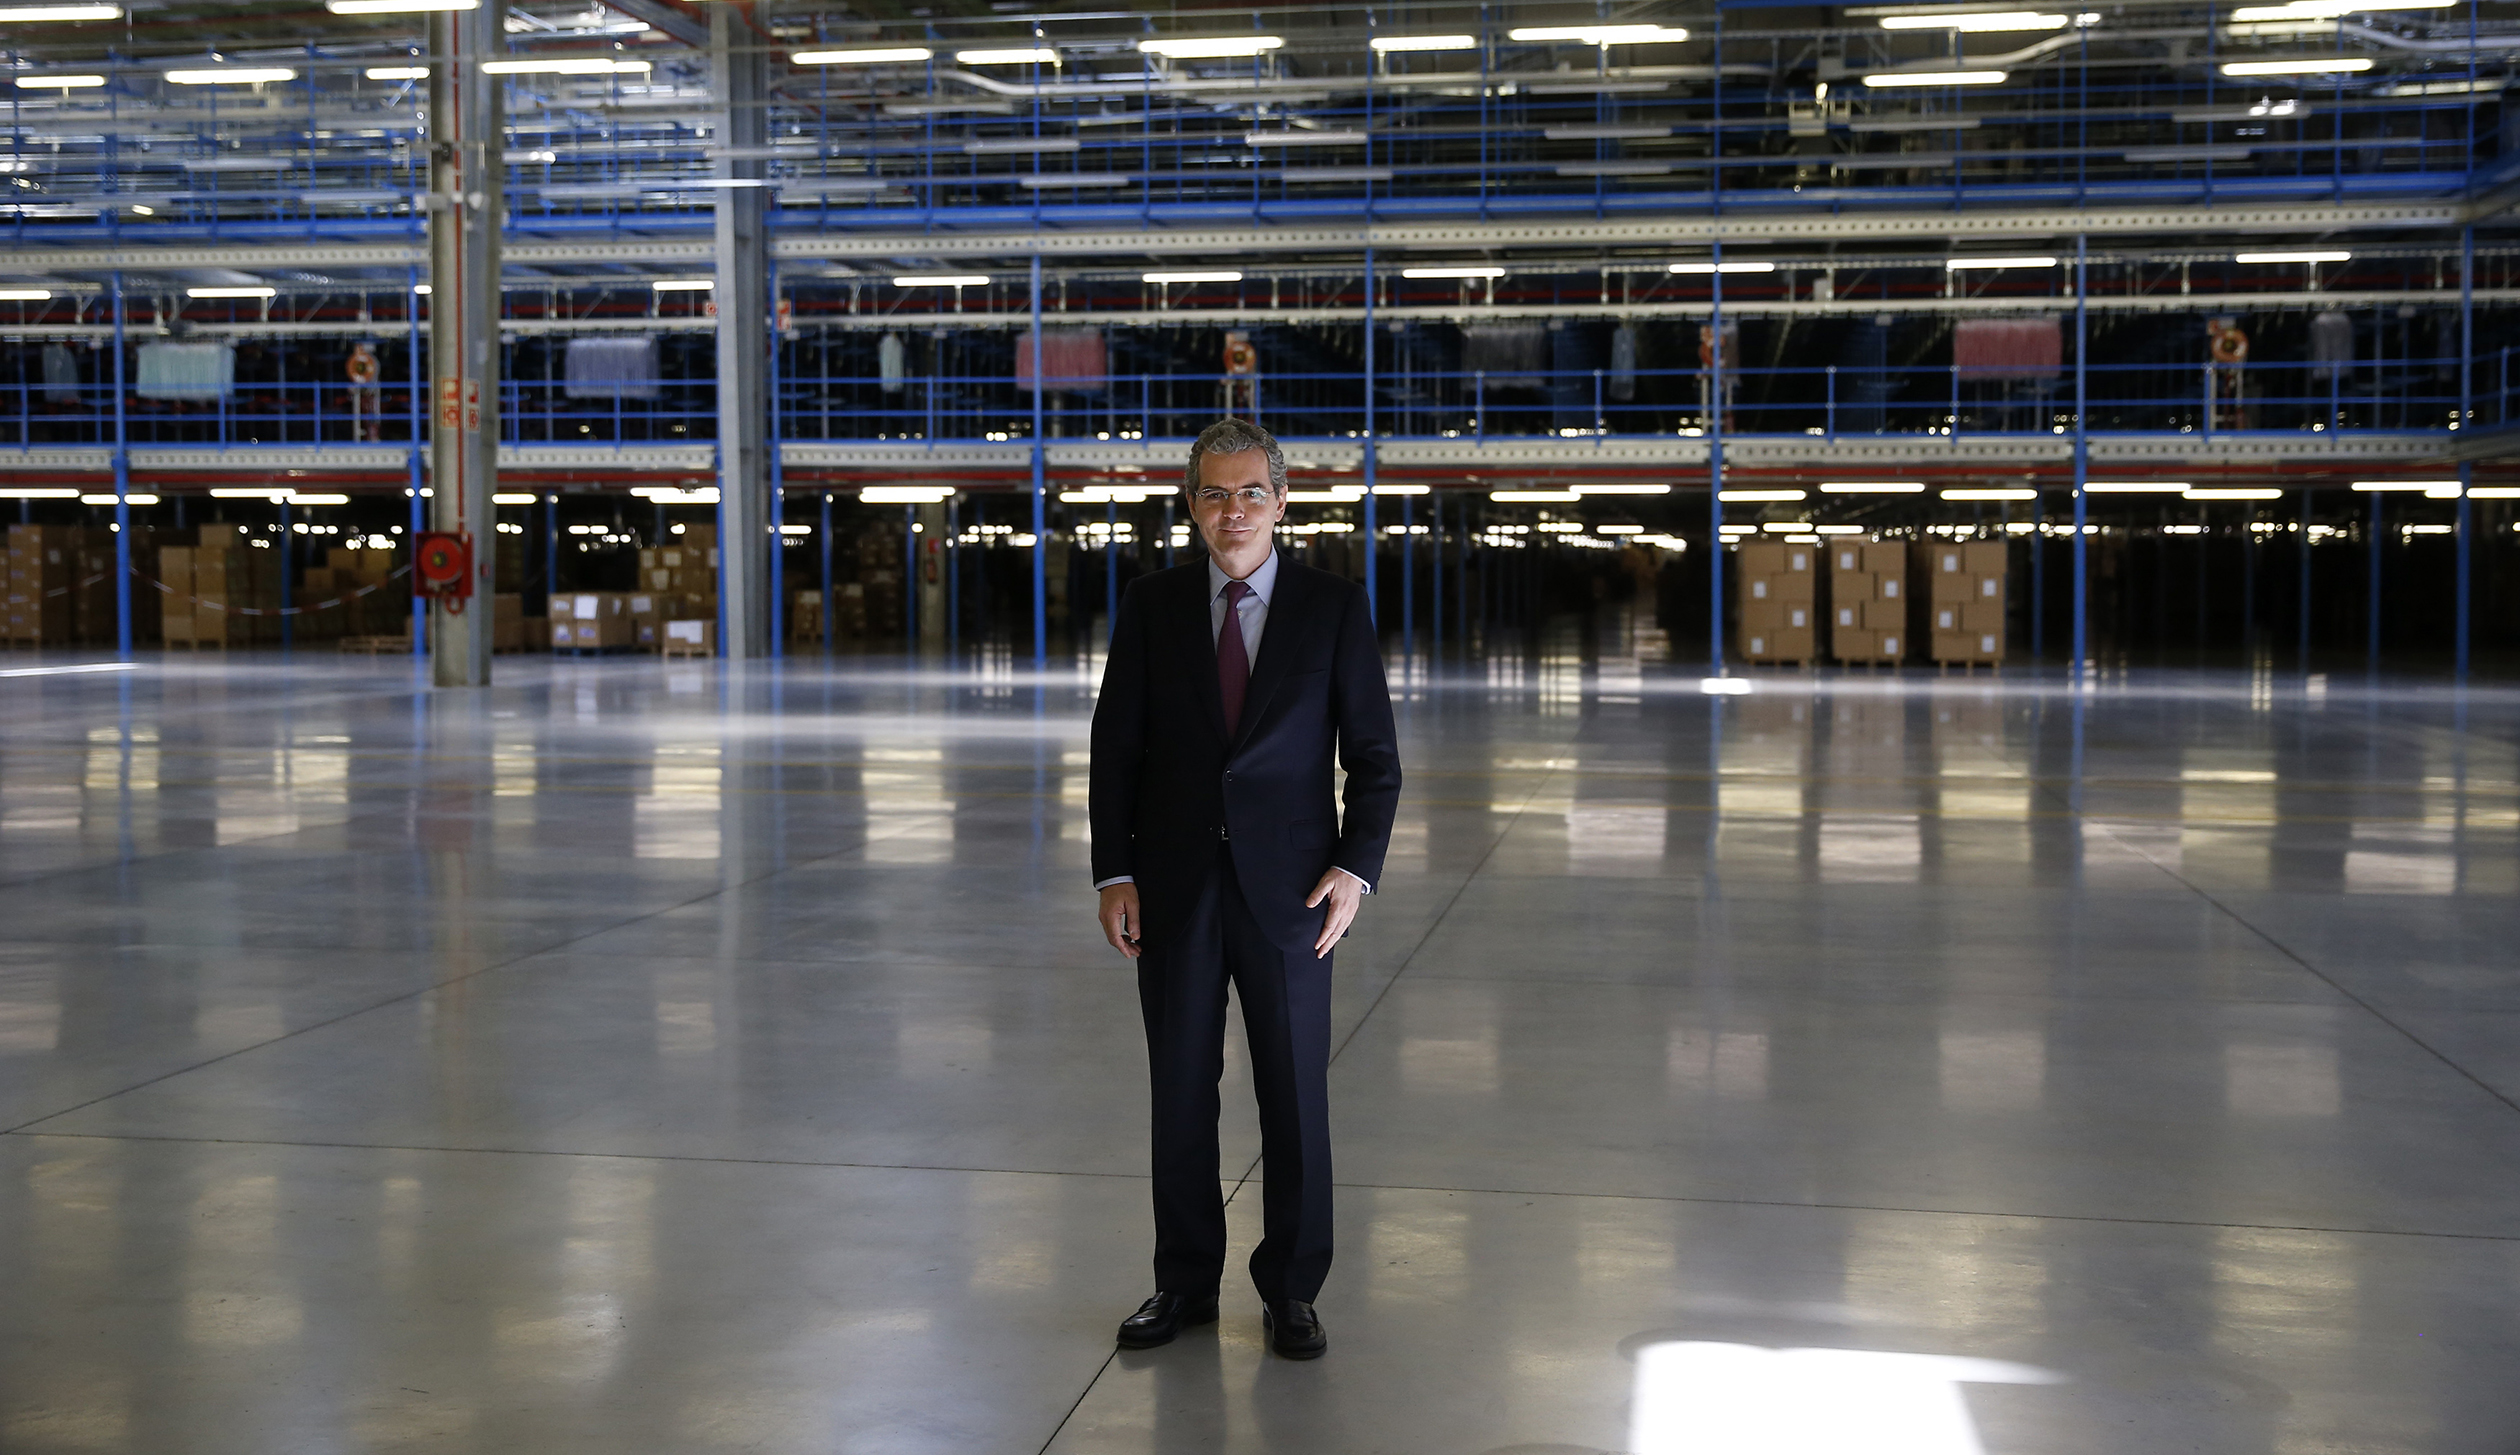 Inditex Chairman and CEO Isla poses for a picture at a distribution center outside Meco